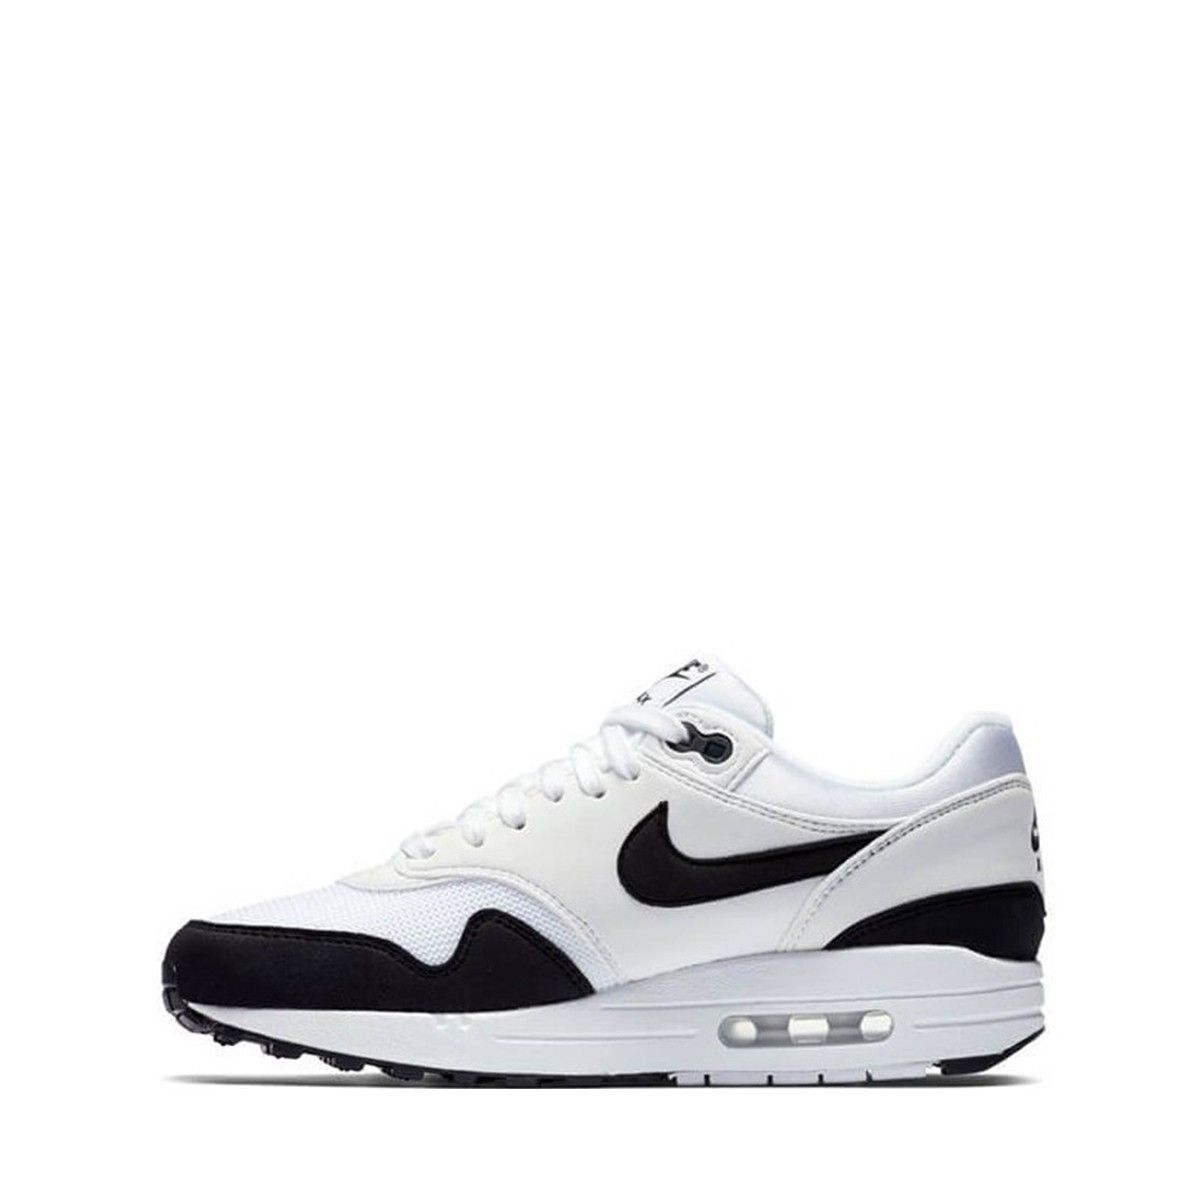 more photos 9813d 15c42 Baskets Nike W AIR MAX 1 - Ref. 319986-109. Loading zoom